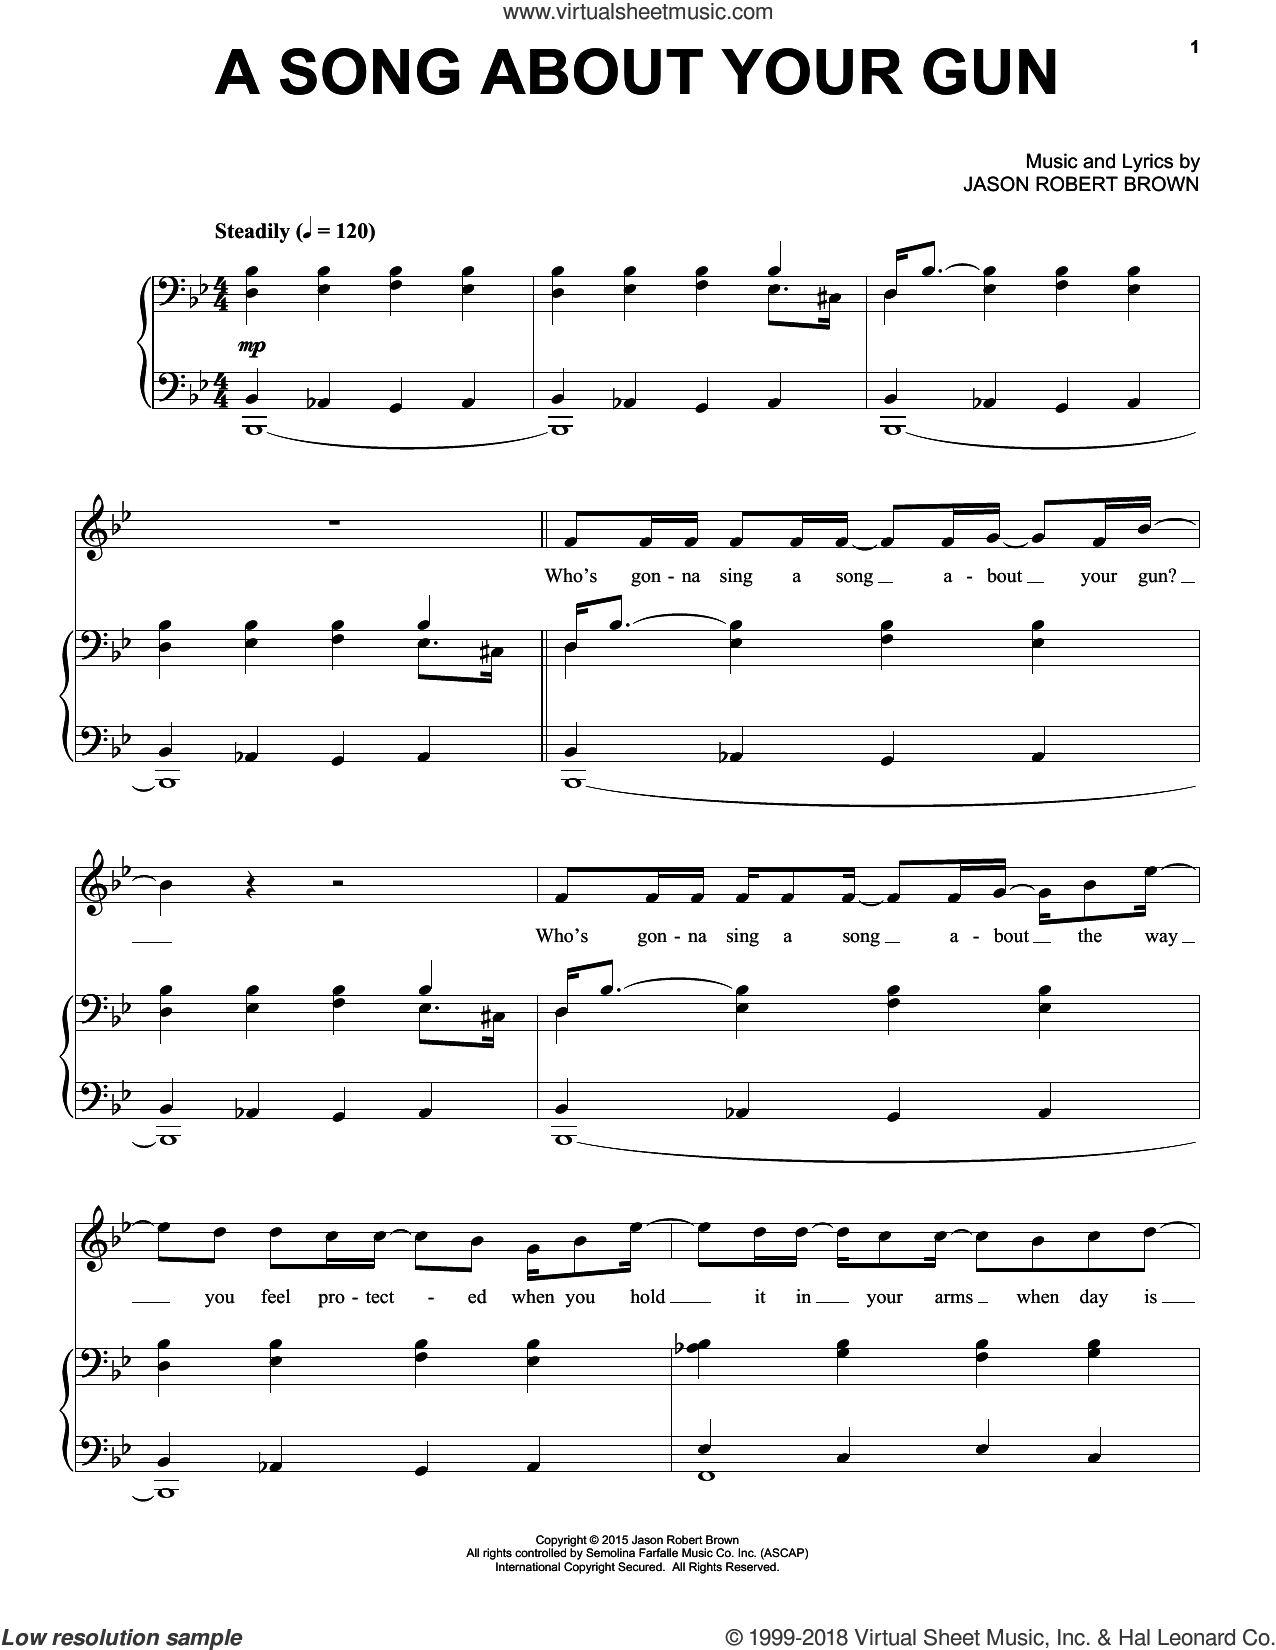 A Song About Your Gun sheet music for voice and piano by Jason Robert Brown, intermediate skill level